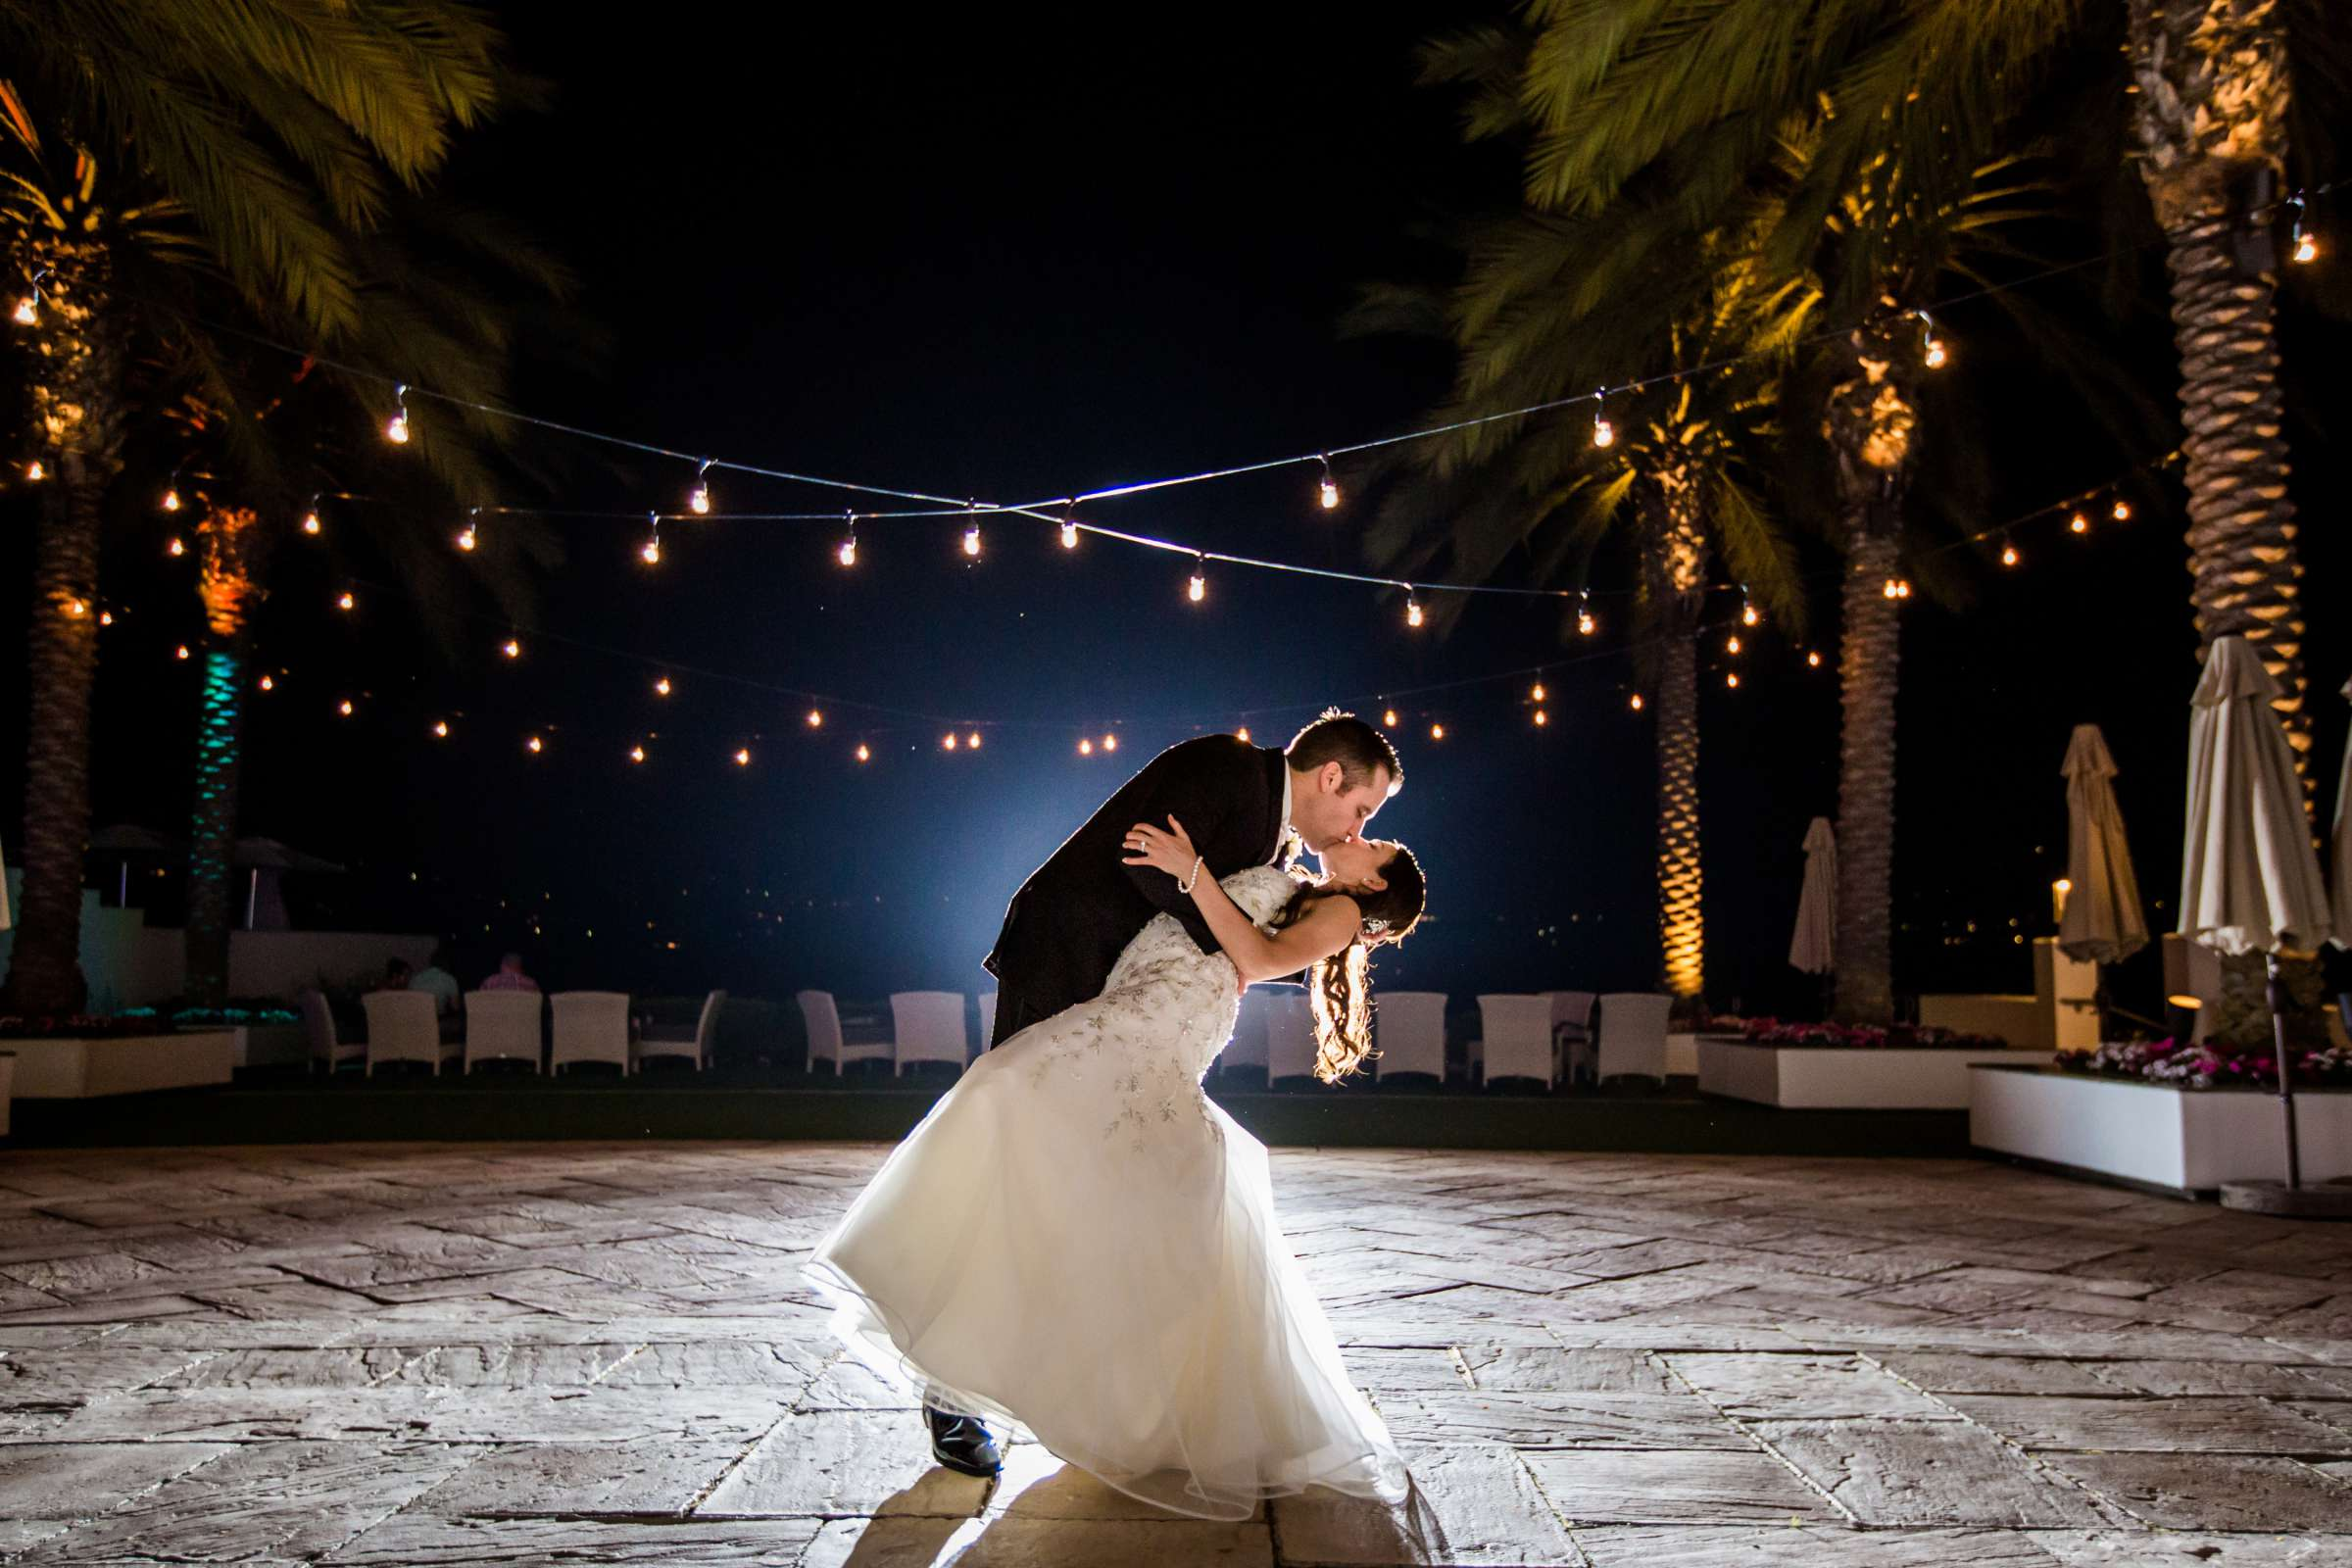 Omni La Costa Resort & Spa Wedding coordinated by EverAfter Events, Natalie and Greg Wedding Photo #359299 by True Photography